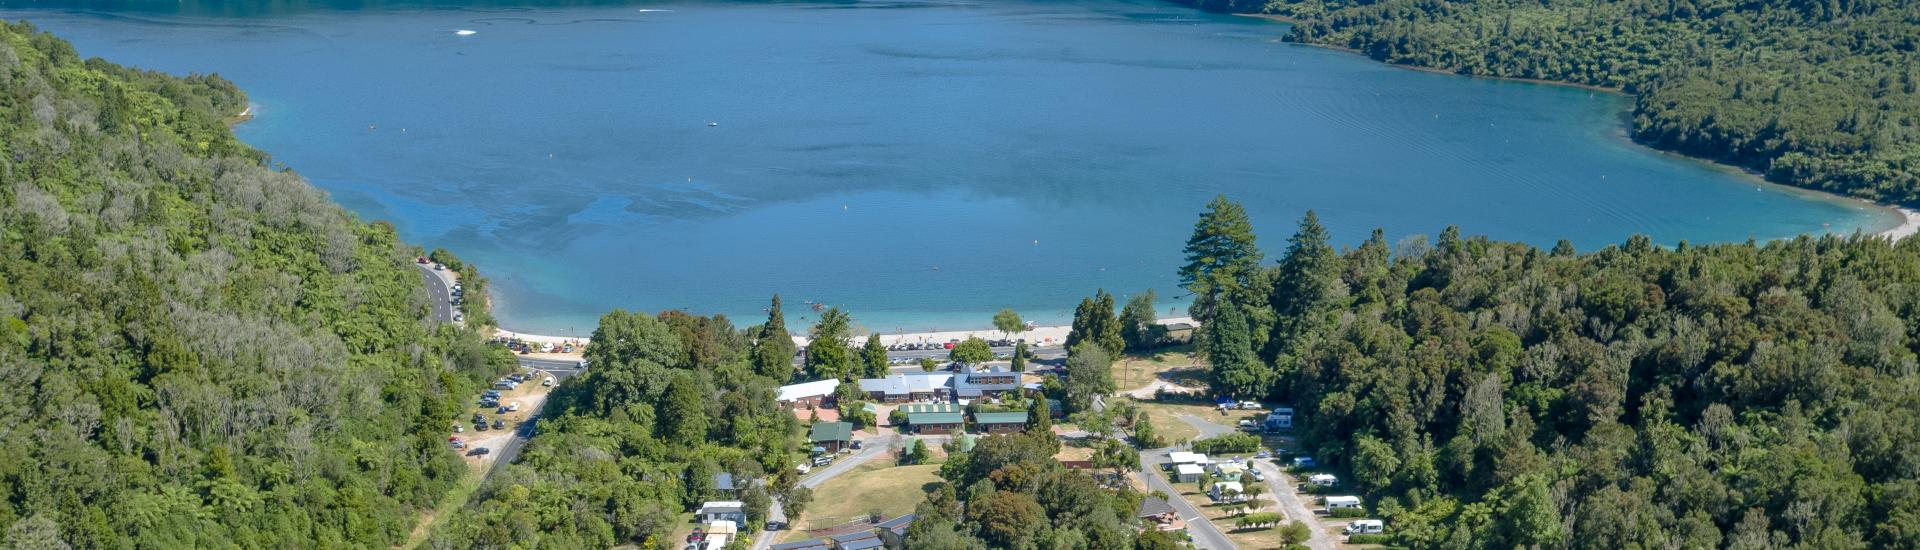 Blue Lake, Rotorua, New Zealand